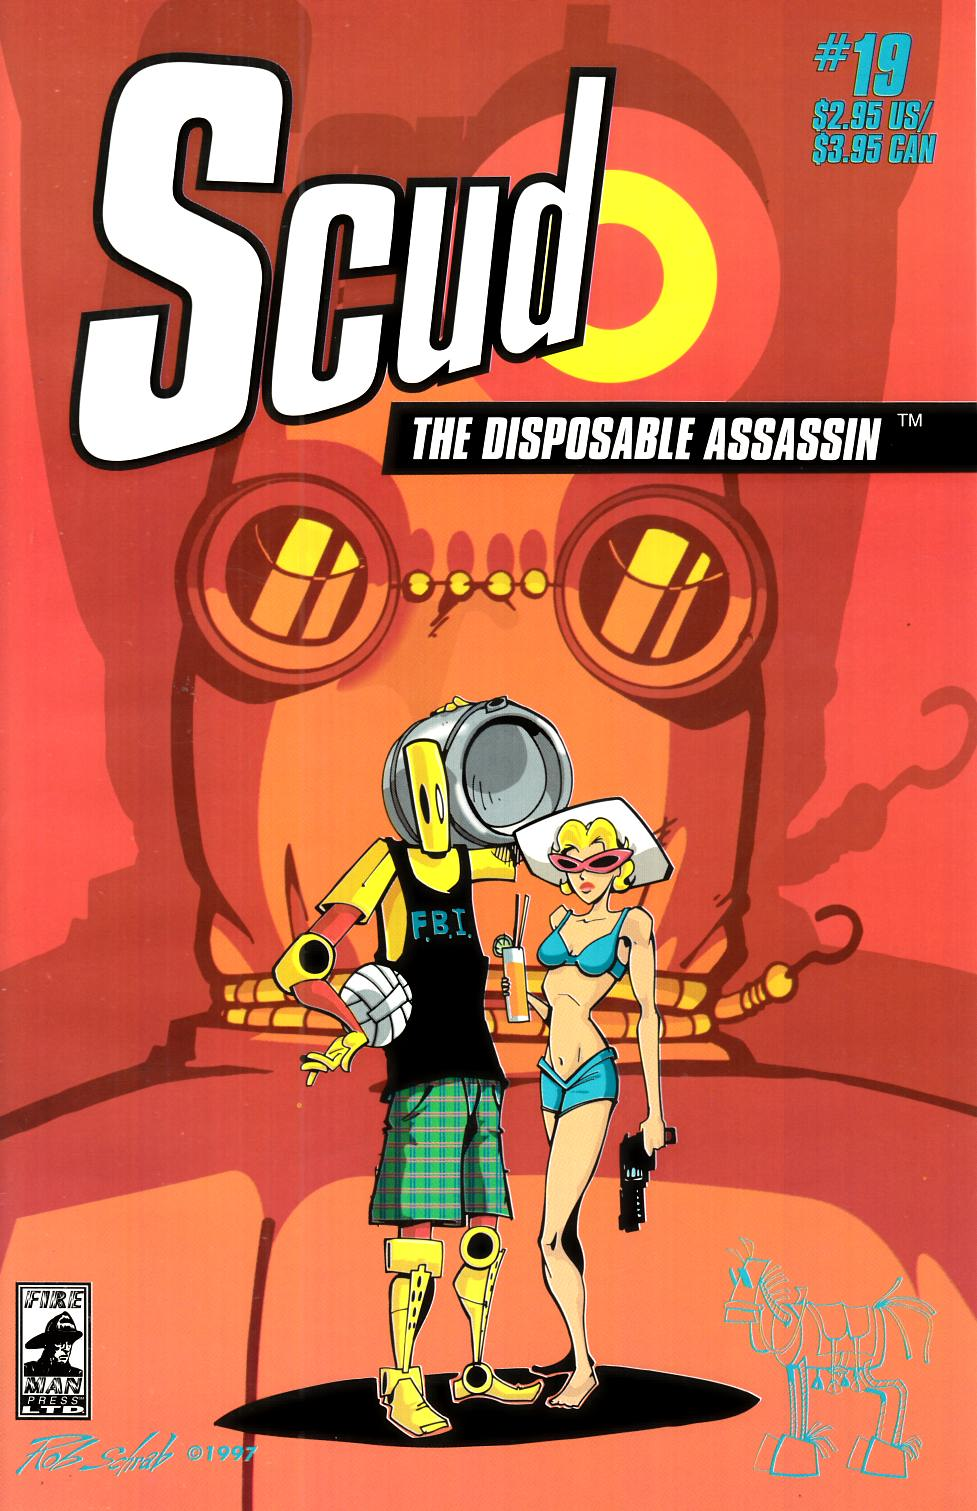 Scud the Disposable Assassin #19 [Fireman Press Comic] THUMBNAIL